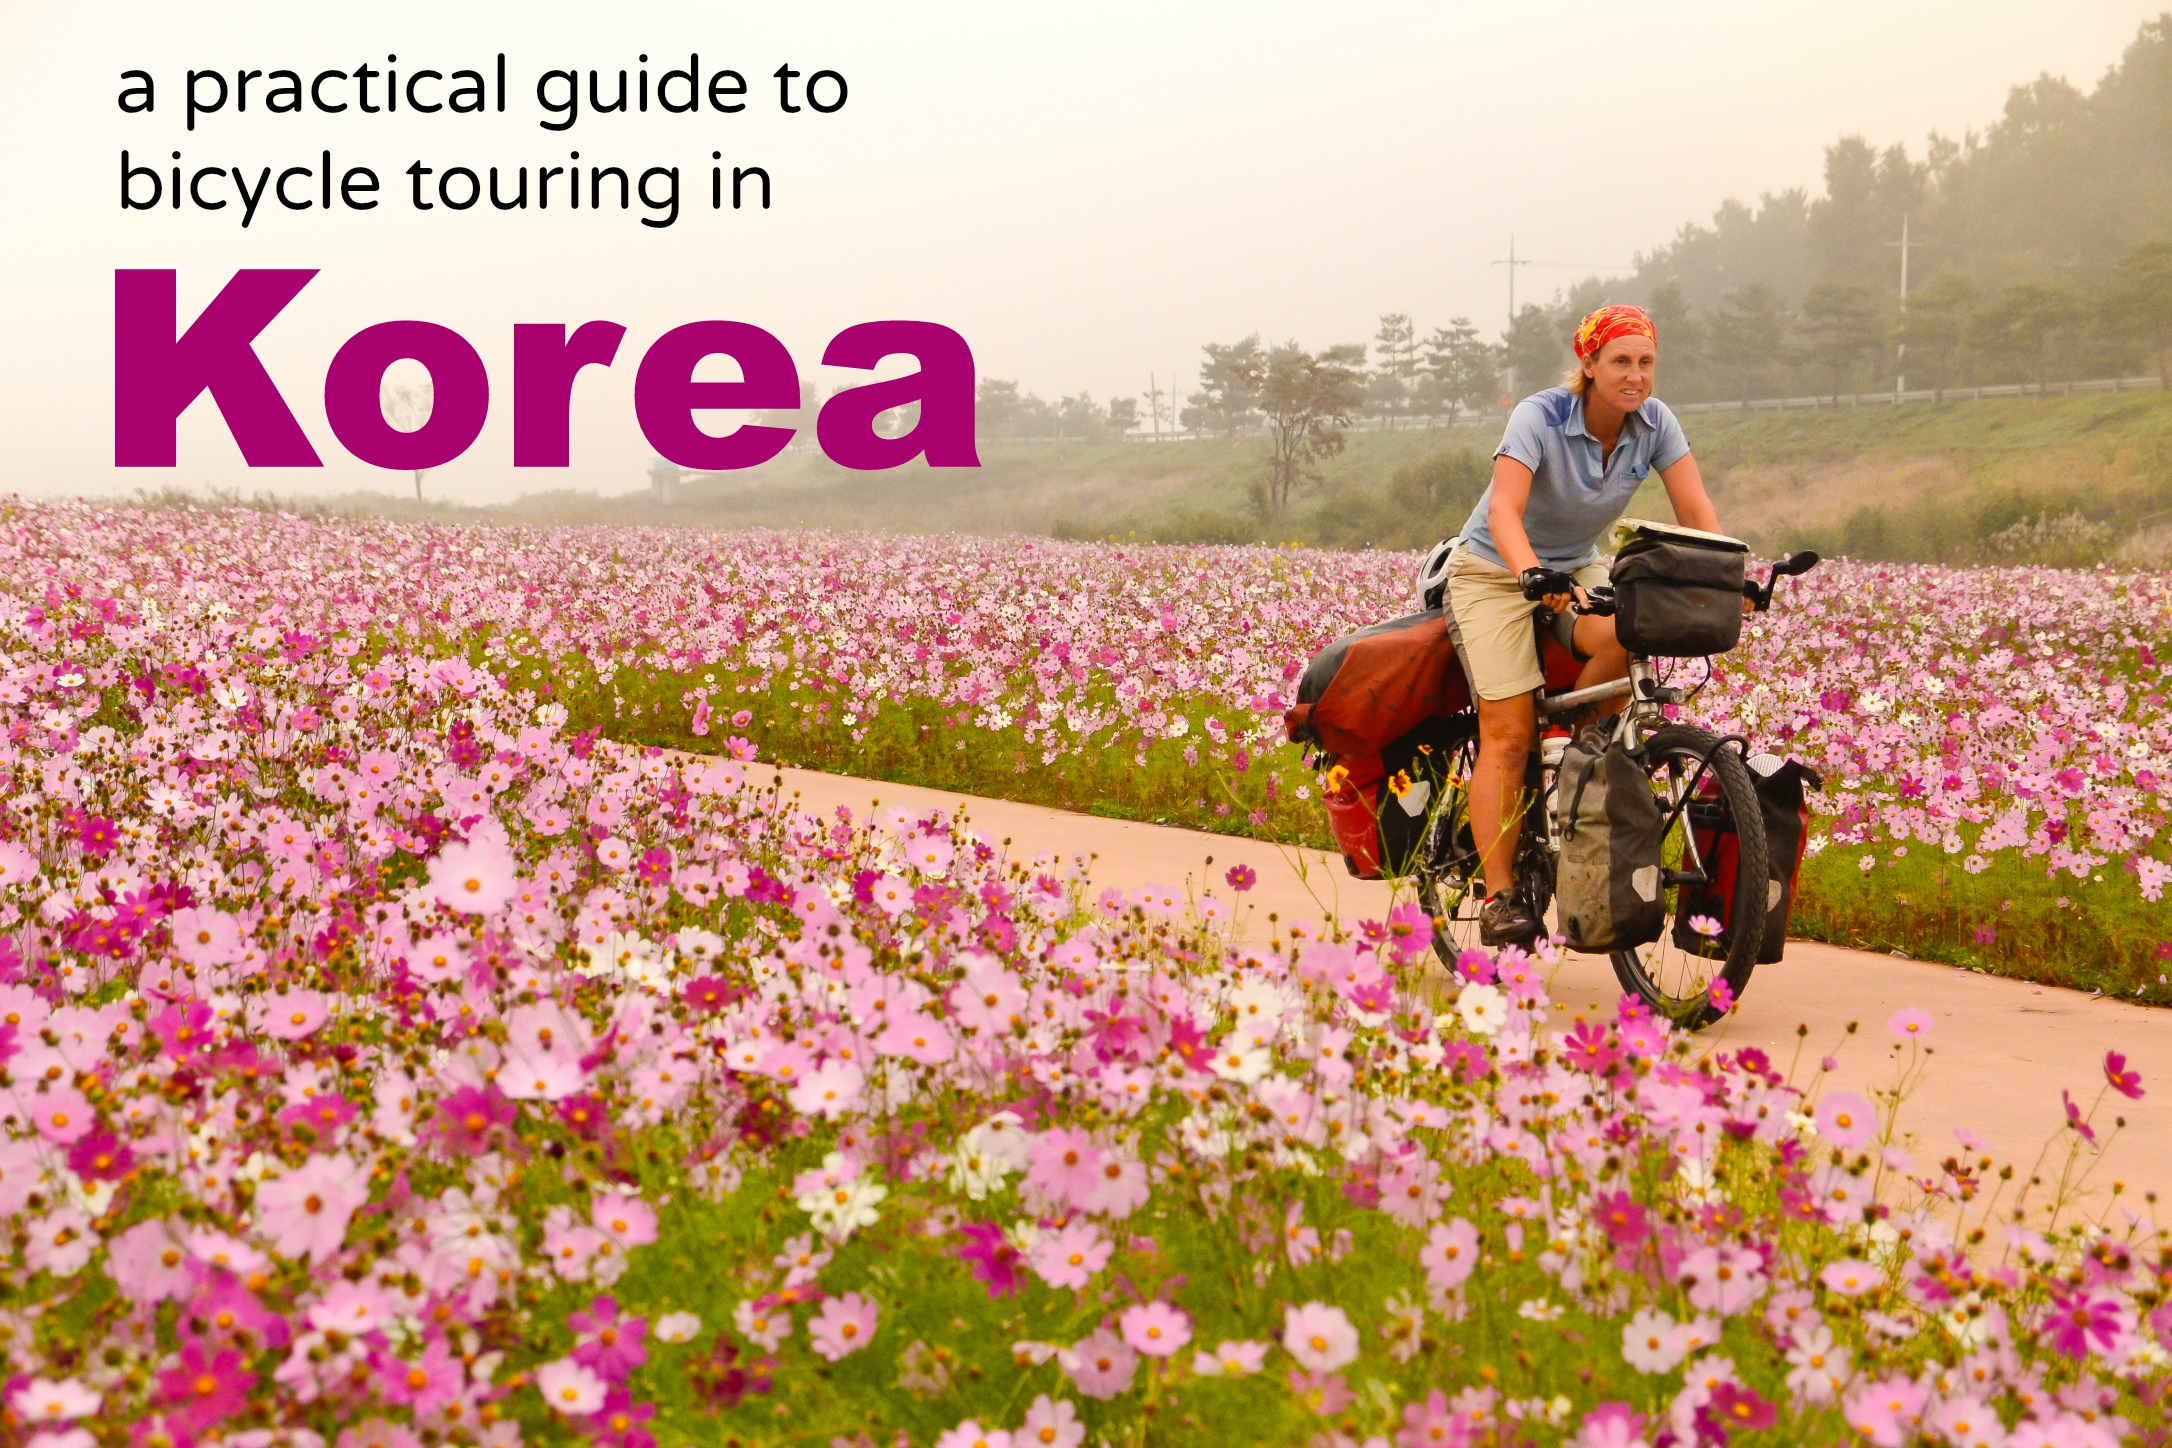 Free guide to bicycle touring in Korea